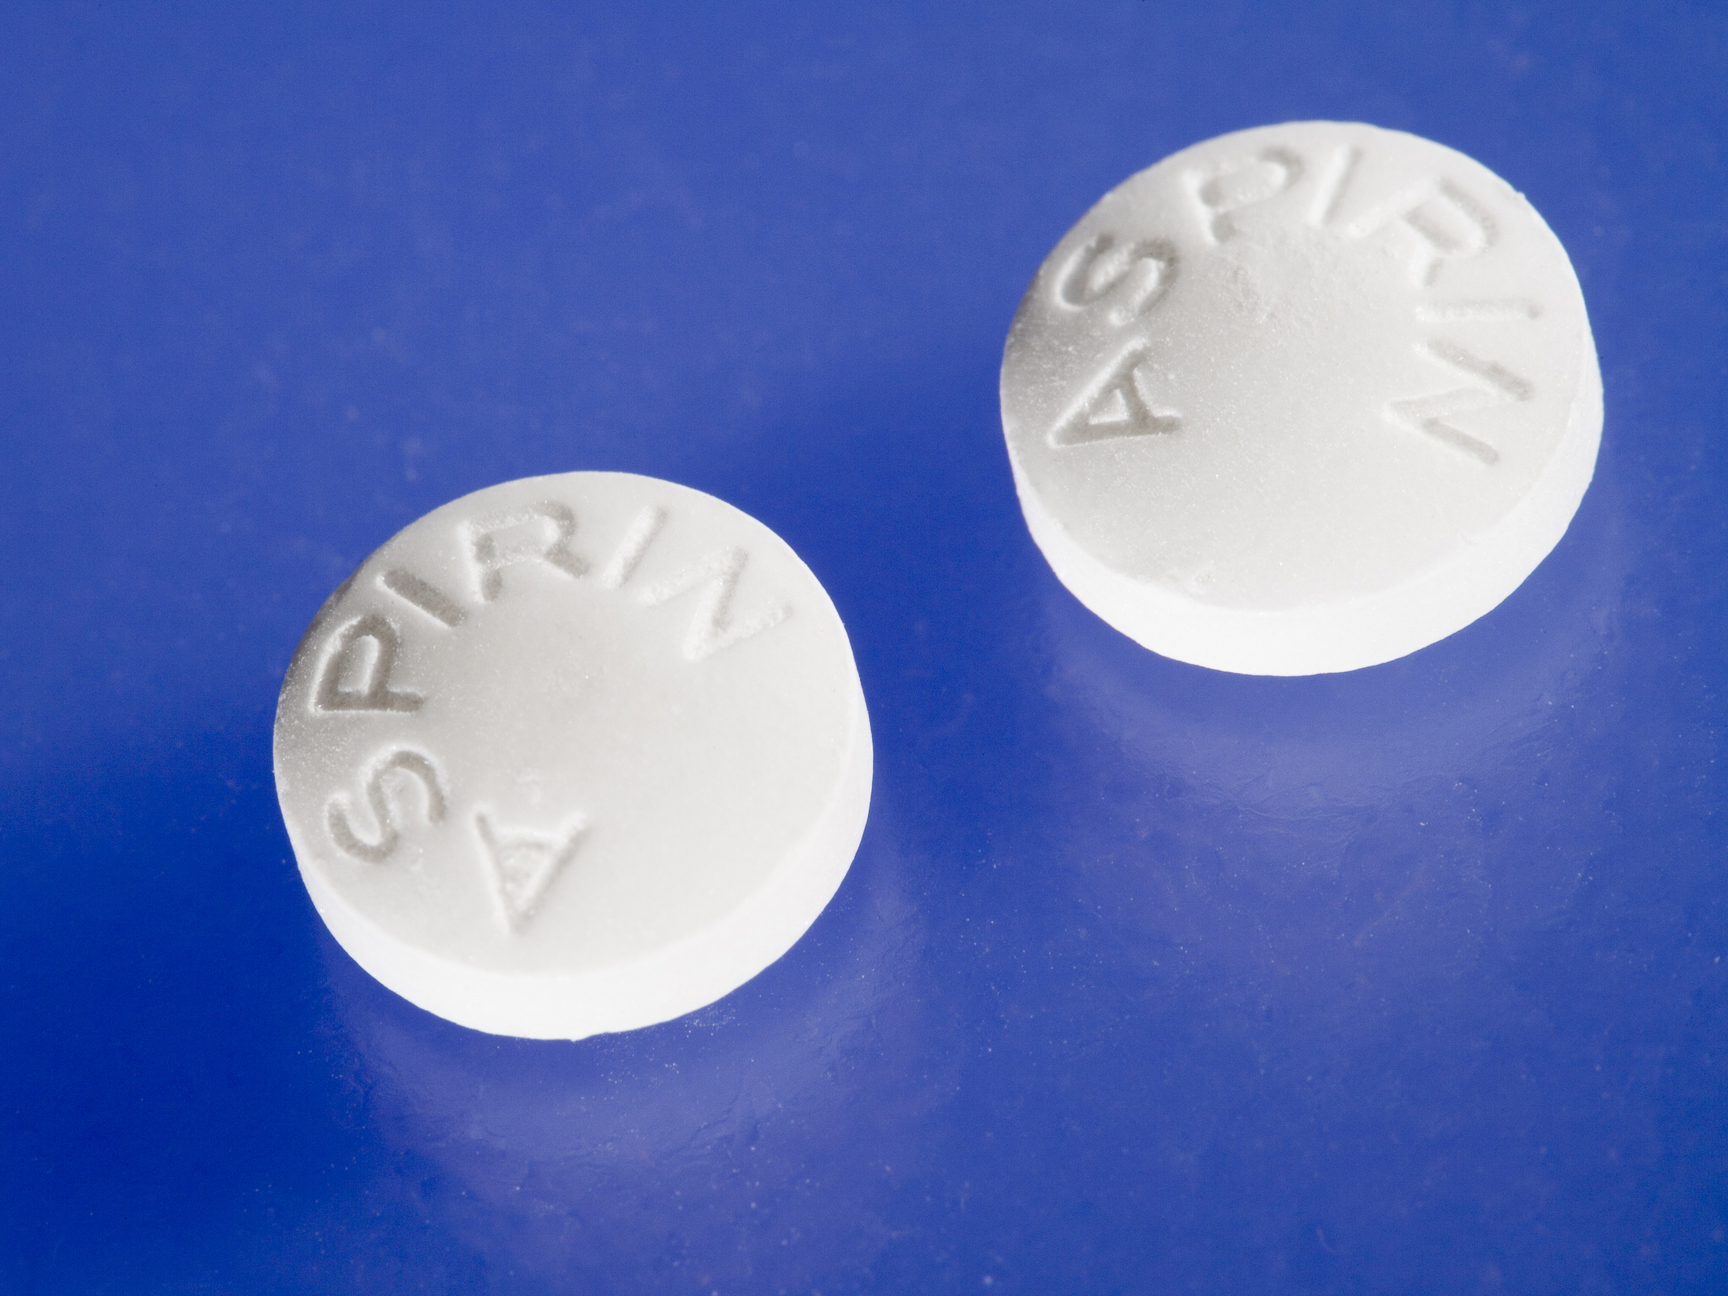 Aspirin may not be as dangerous as we thought